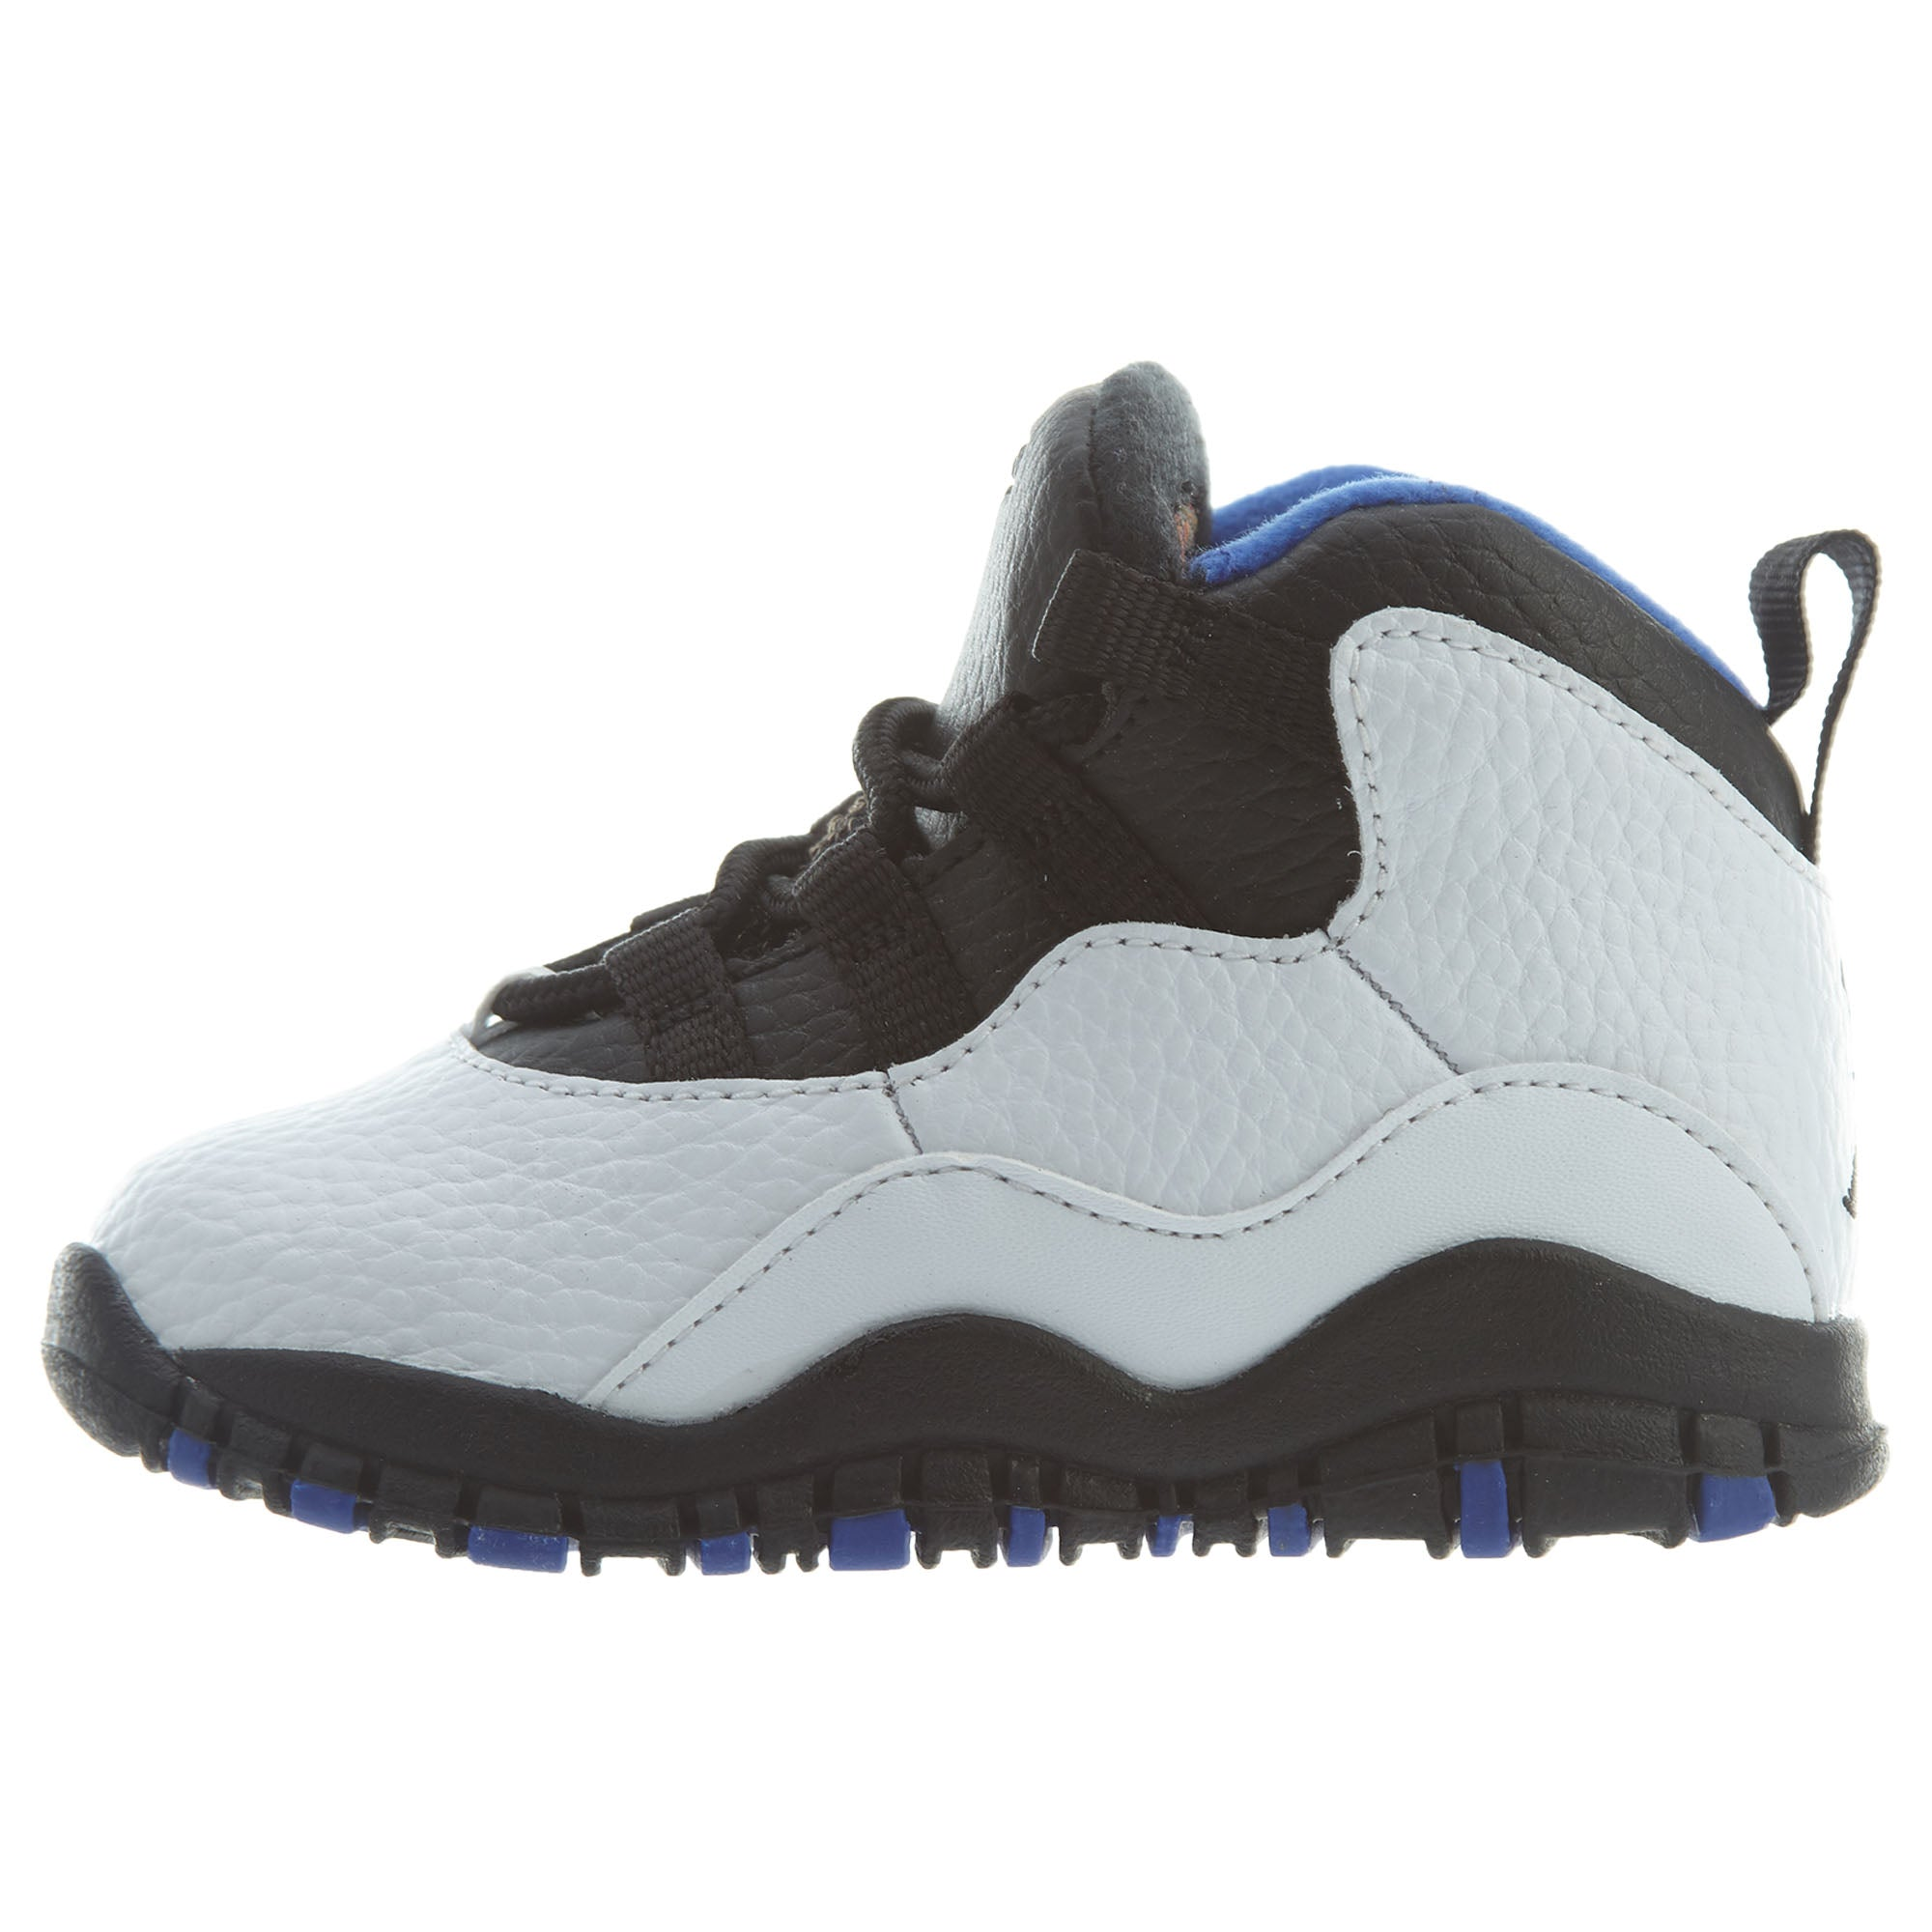 e82534e6983d72 Jordan 10 Retro Toddlers Style   310808-108 – talkmoney730